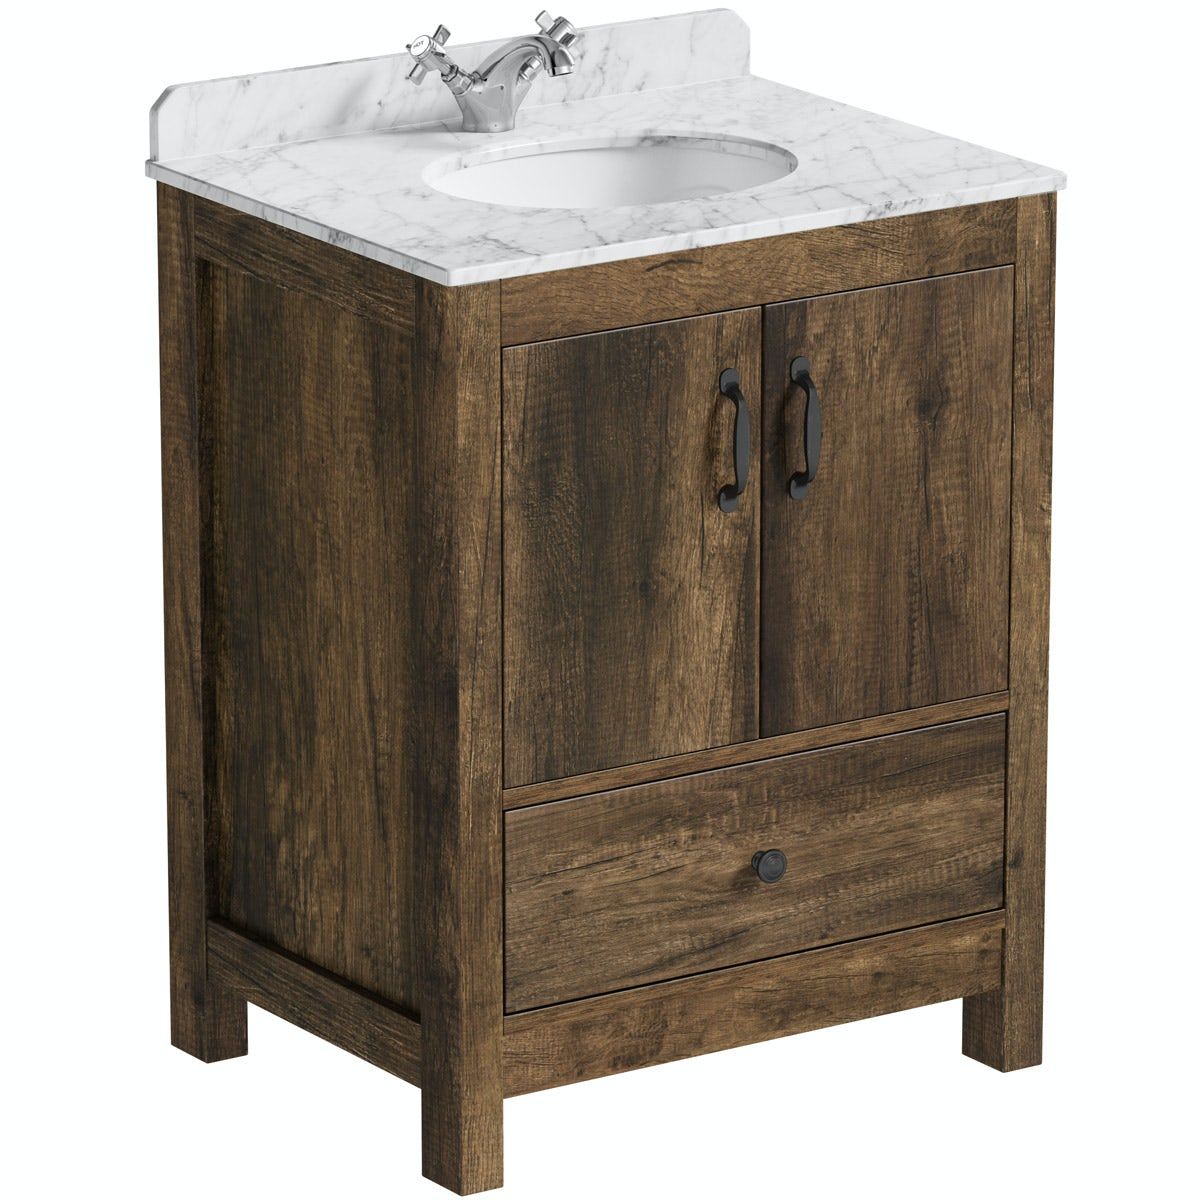 The Bath Co. Brixton vanity unit and white marble basin 650mmThe Bath Co. Dalston vanity unit and white marble basin 650mm